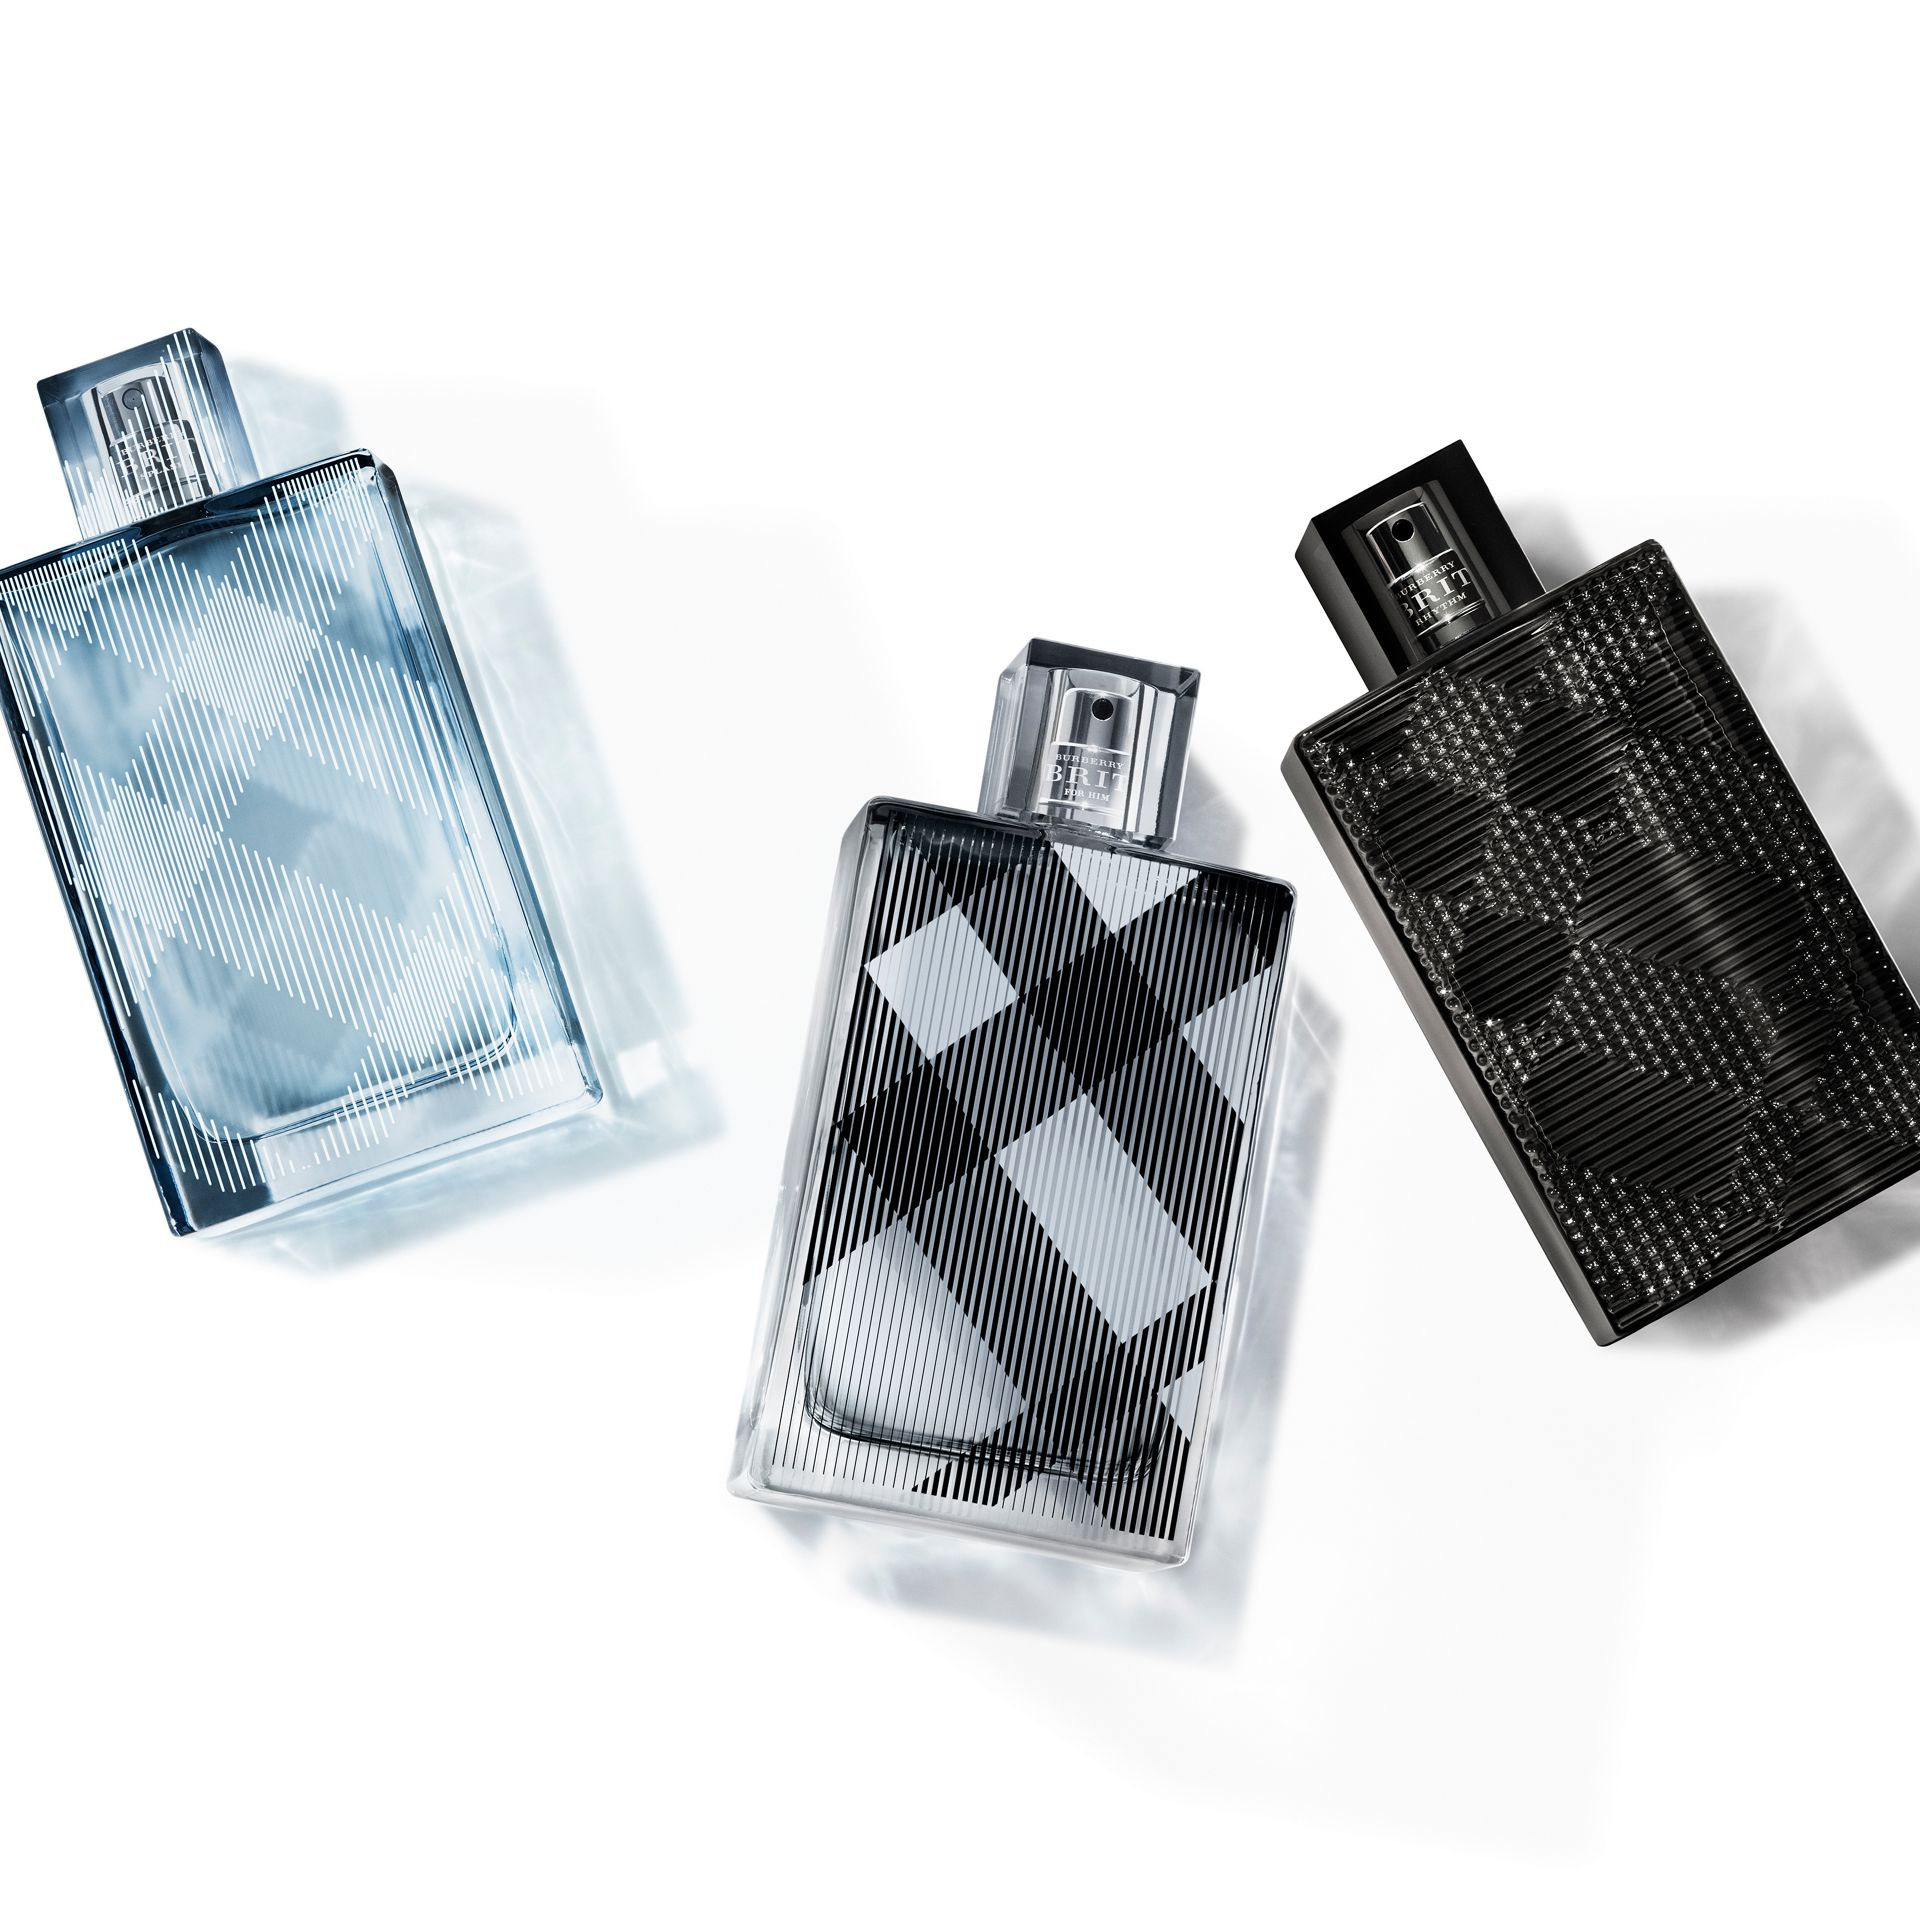 Burberry Brit Rhythm 淡香水 180ml - 圖庫照片 3